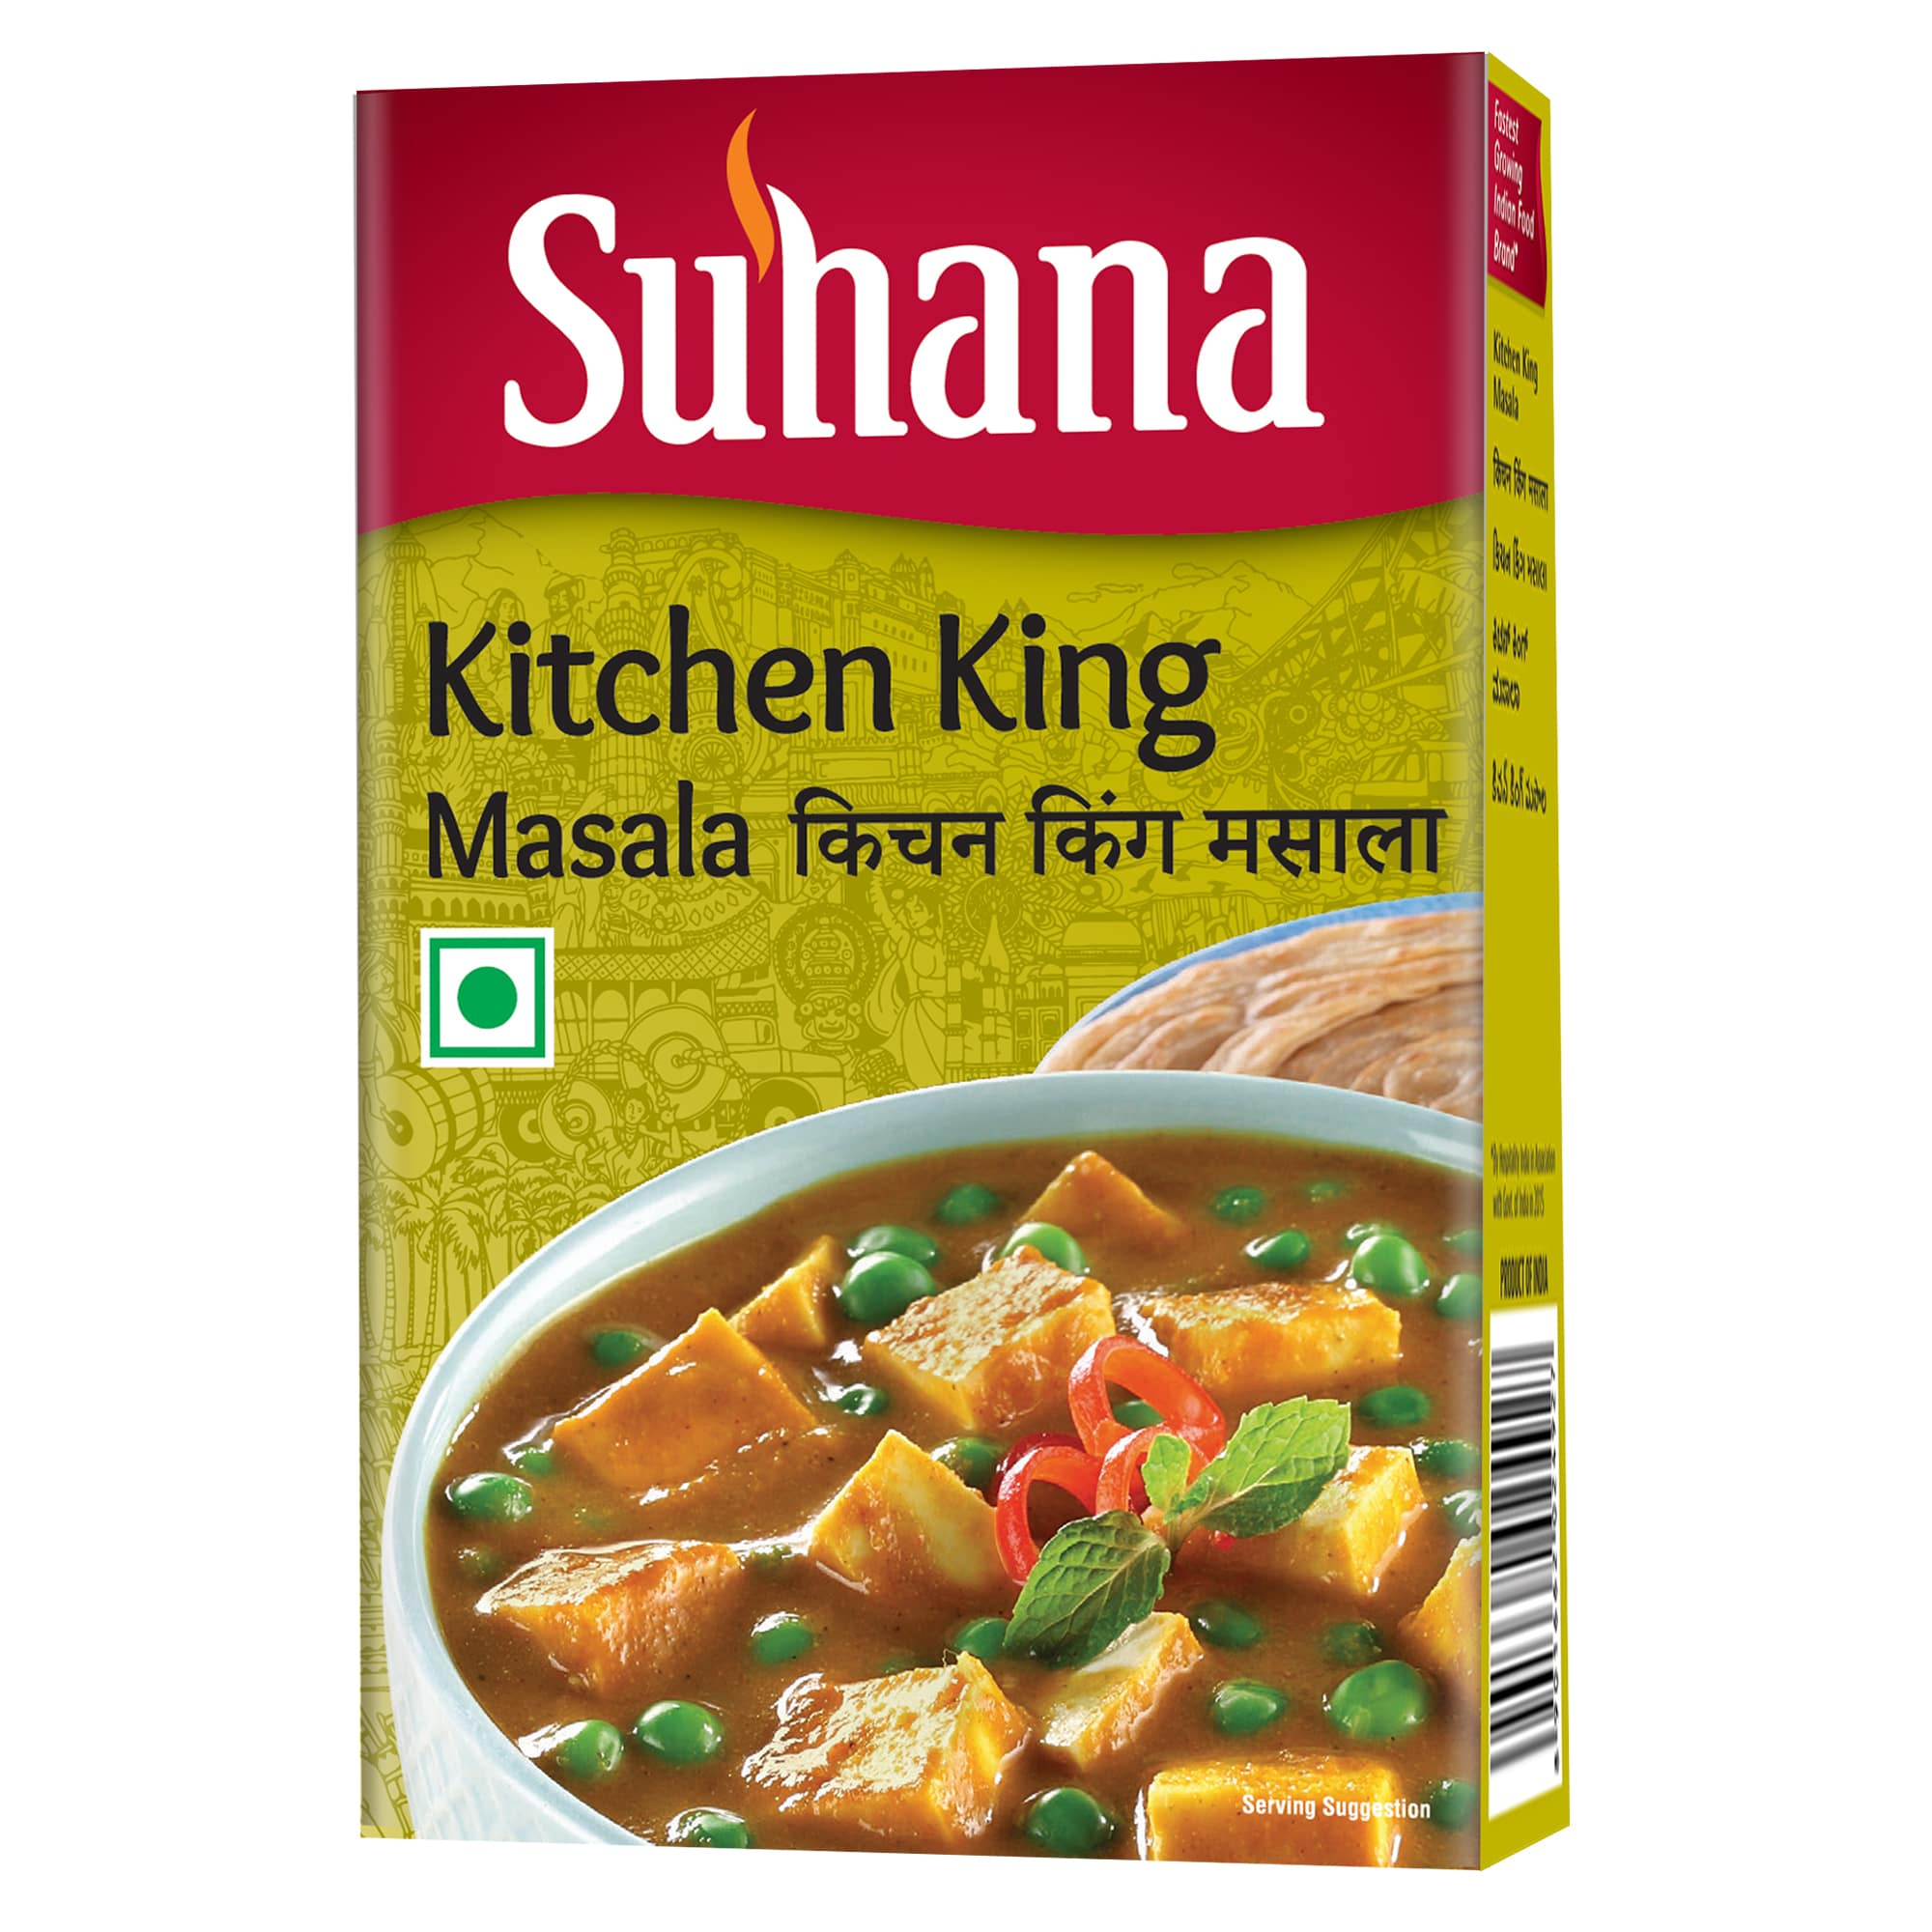 Suhana Kitchen King Masala Box